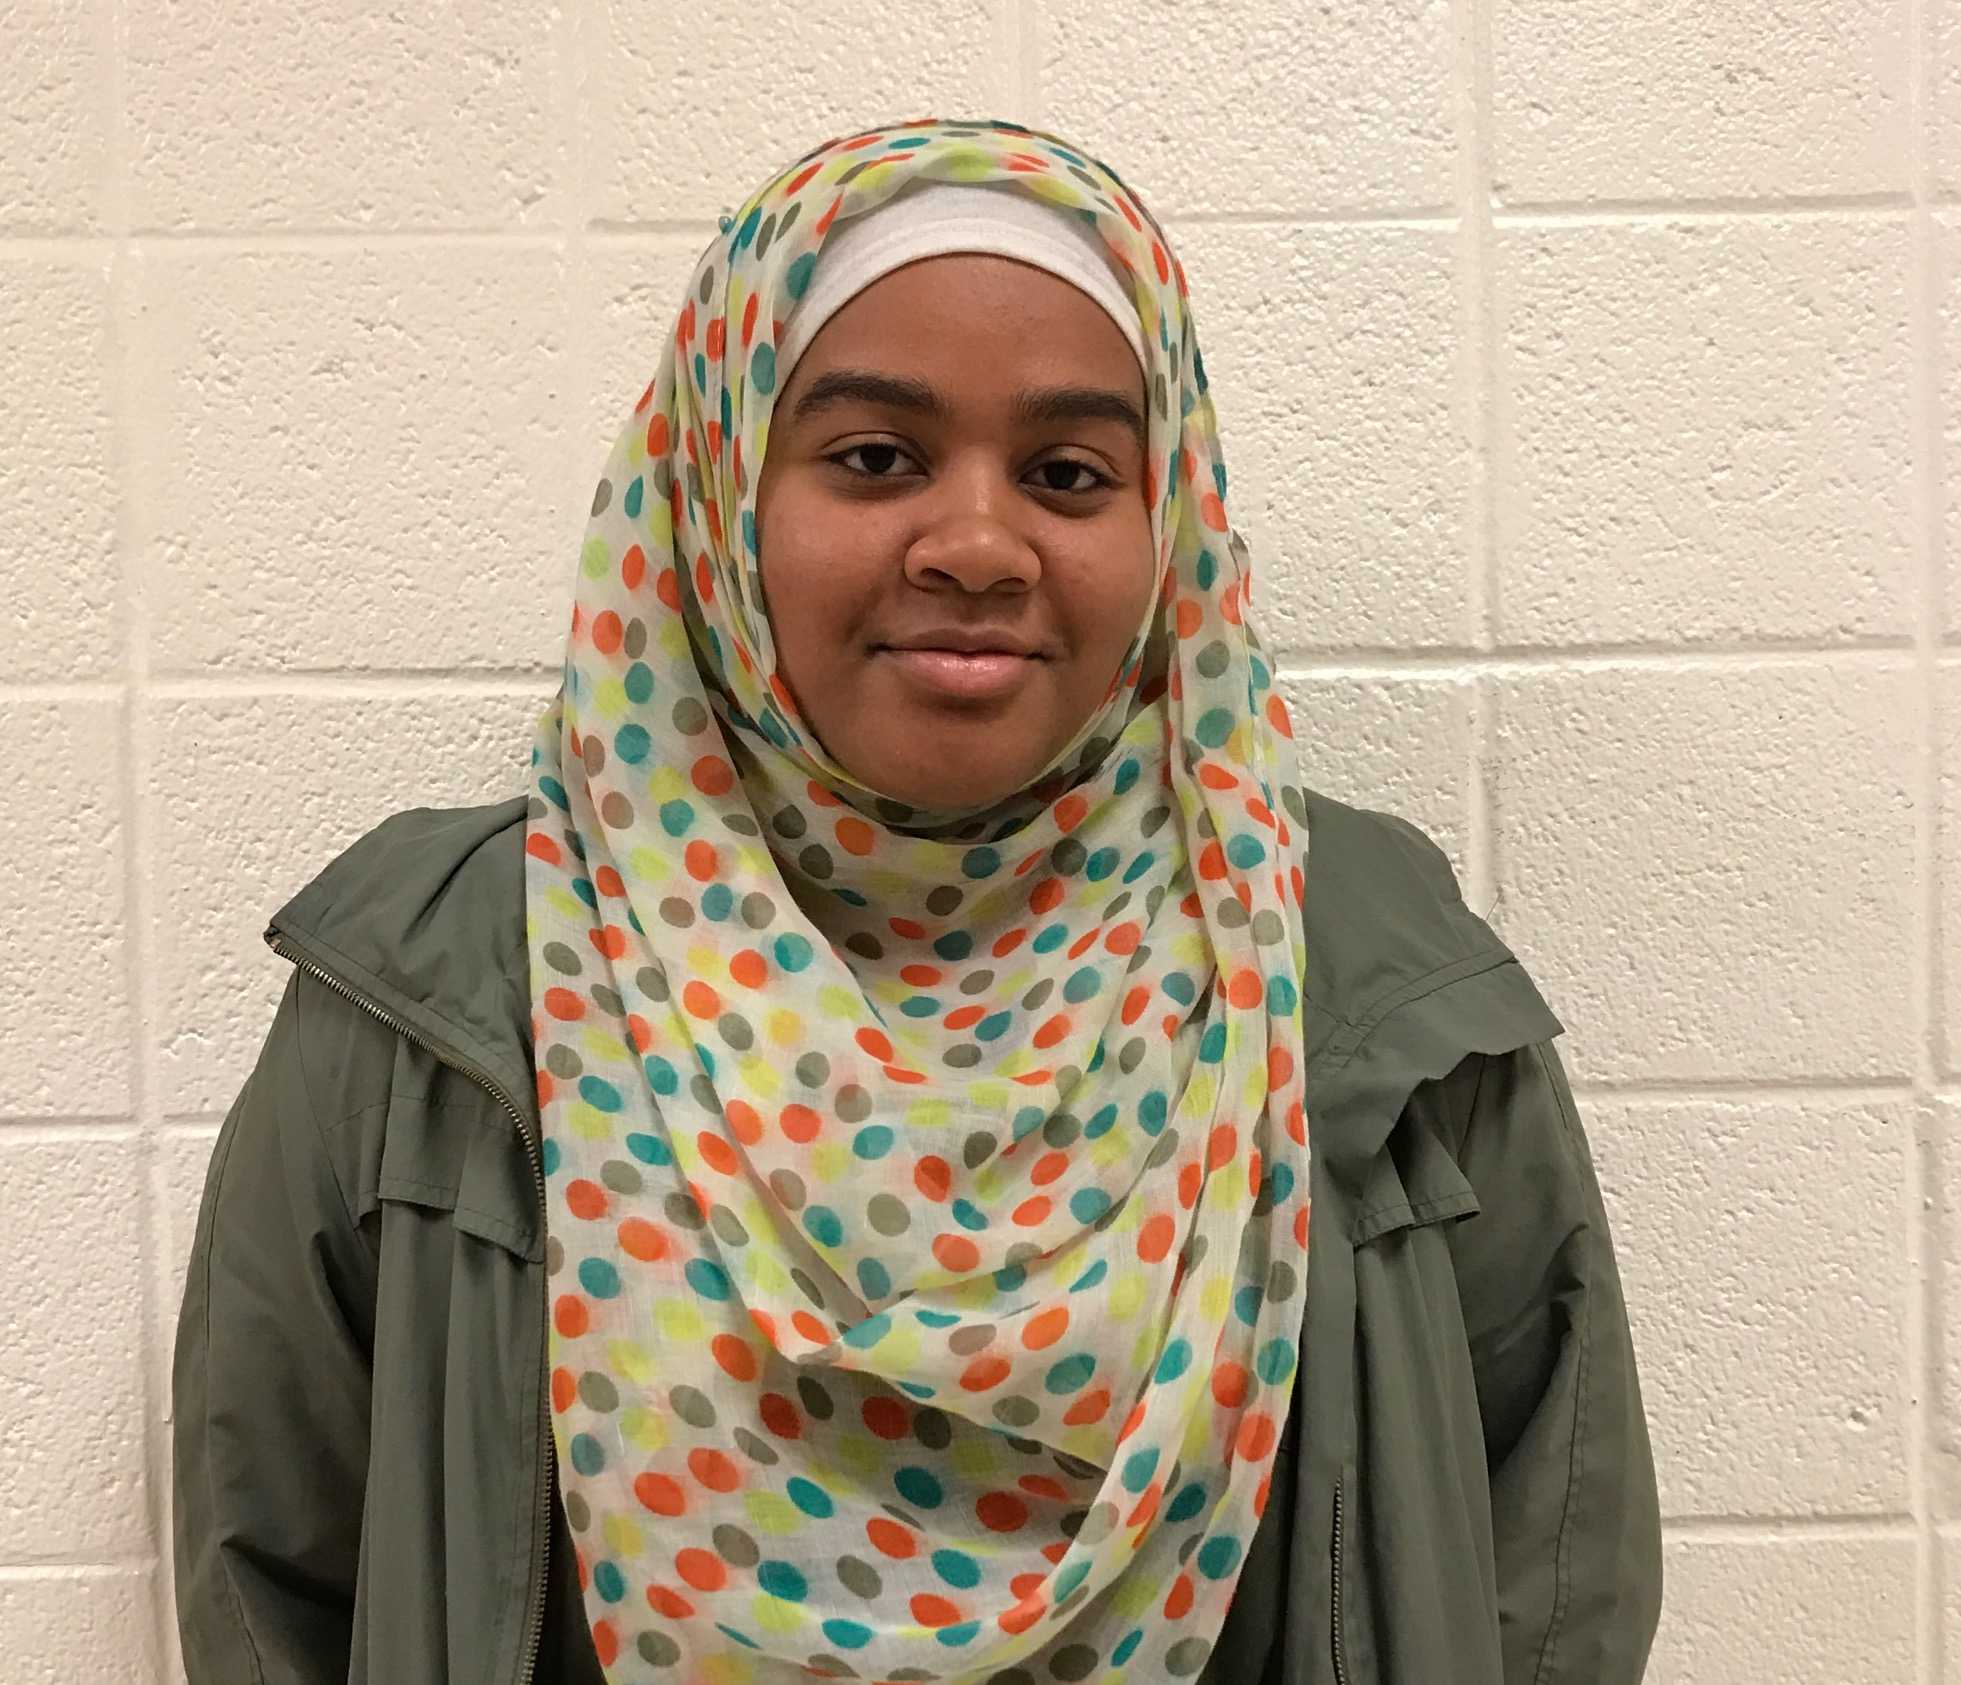 Junior Je'Nan Hayes was not allowed to play during the regional semifinal basketball game because referees said her hijab was not properly documented with the state.